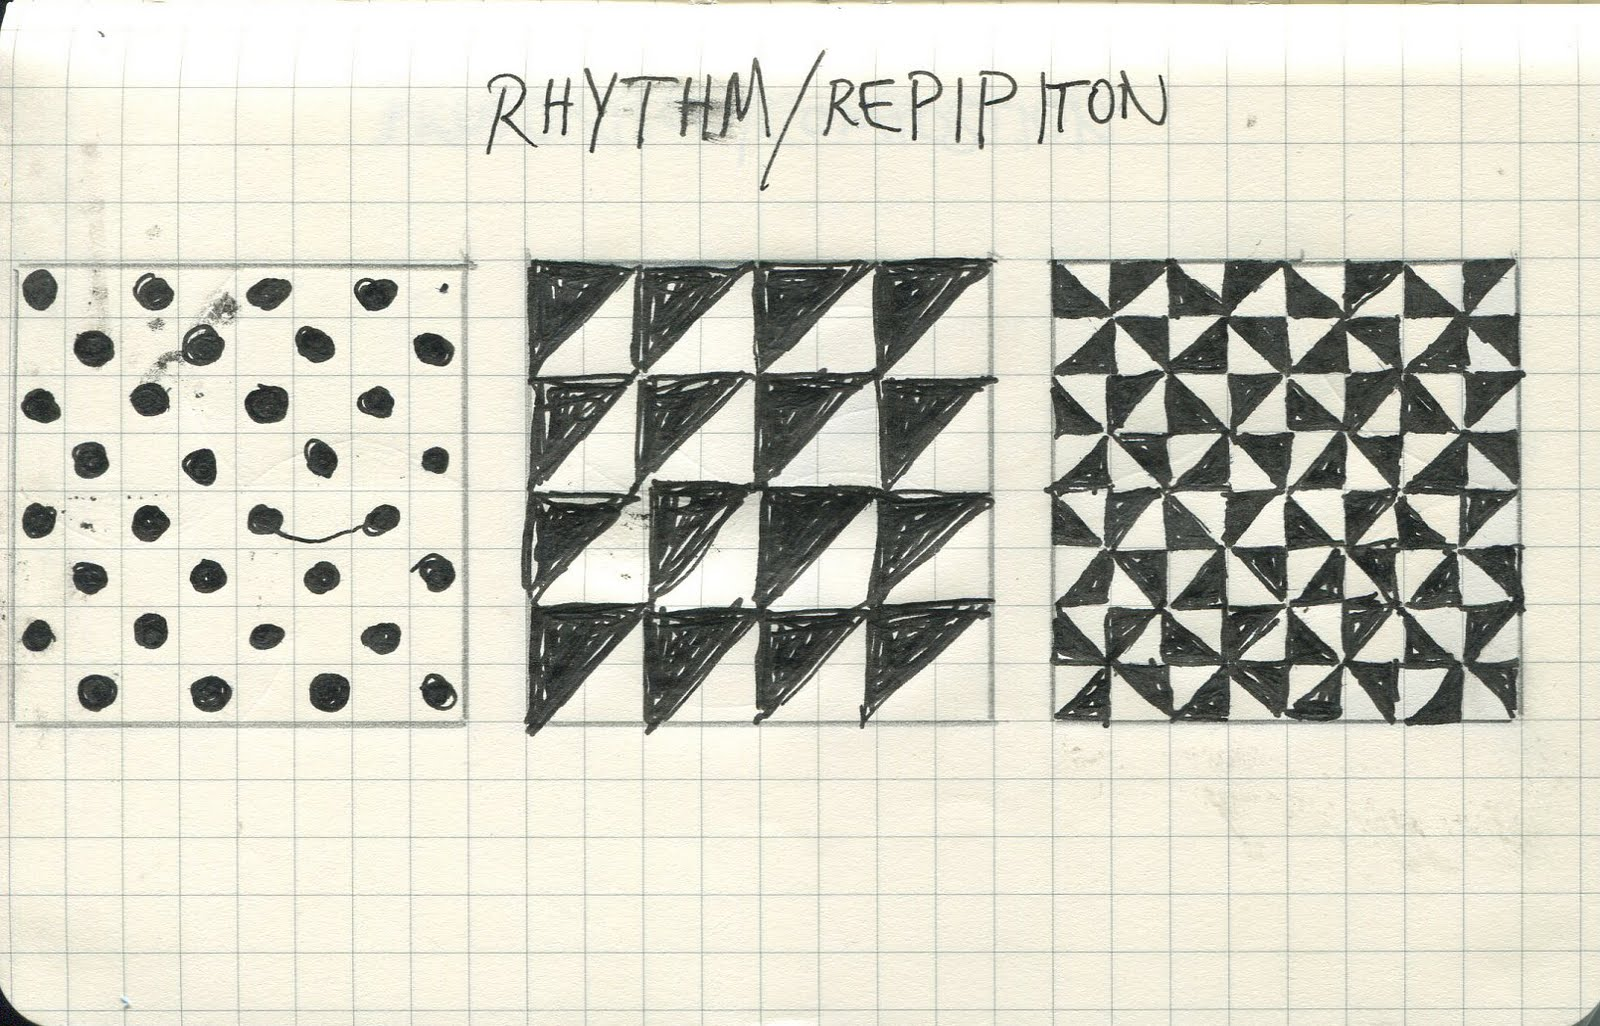 Principles Of Design Rhythm And Repetition | www.imgkid ...